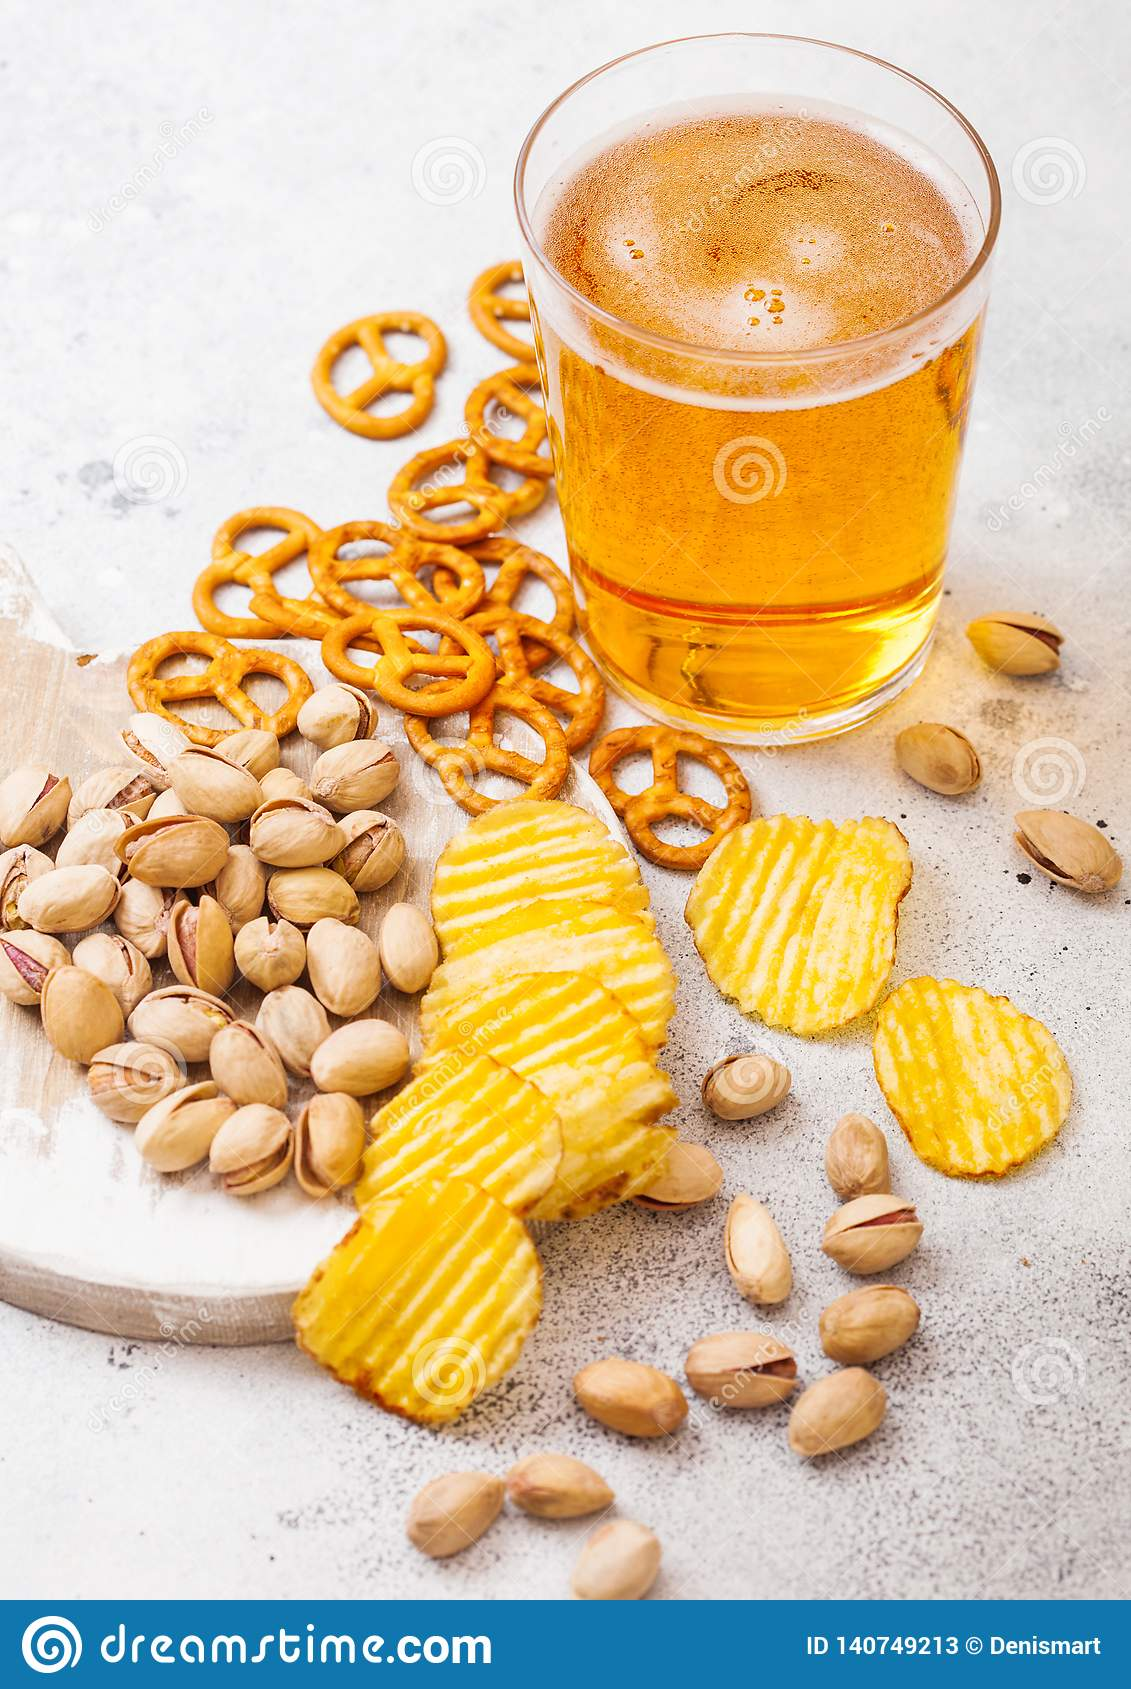 Glass pint of craft lager beer with snack on stone kitchen table background. Pretzel and crisps and pistachio on roud wooden board